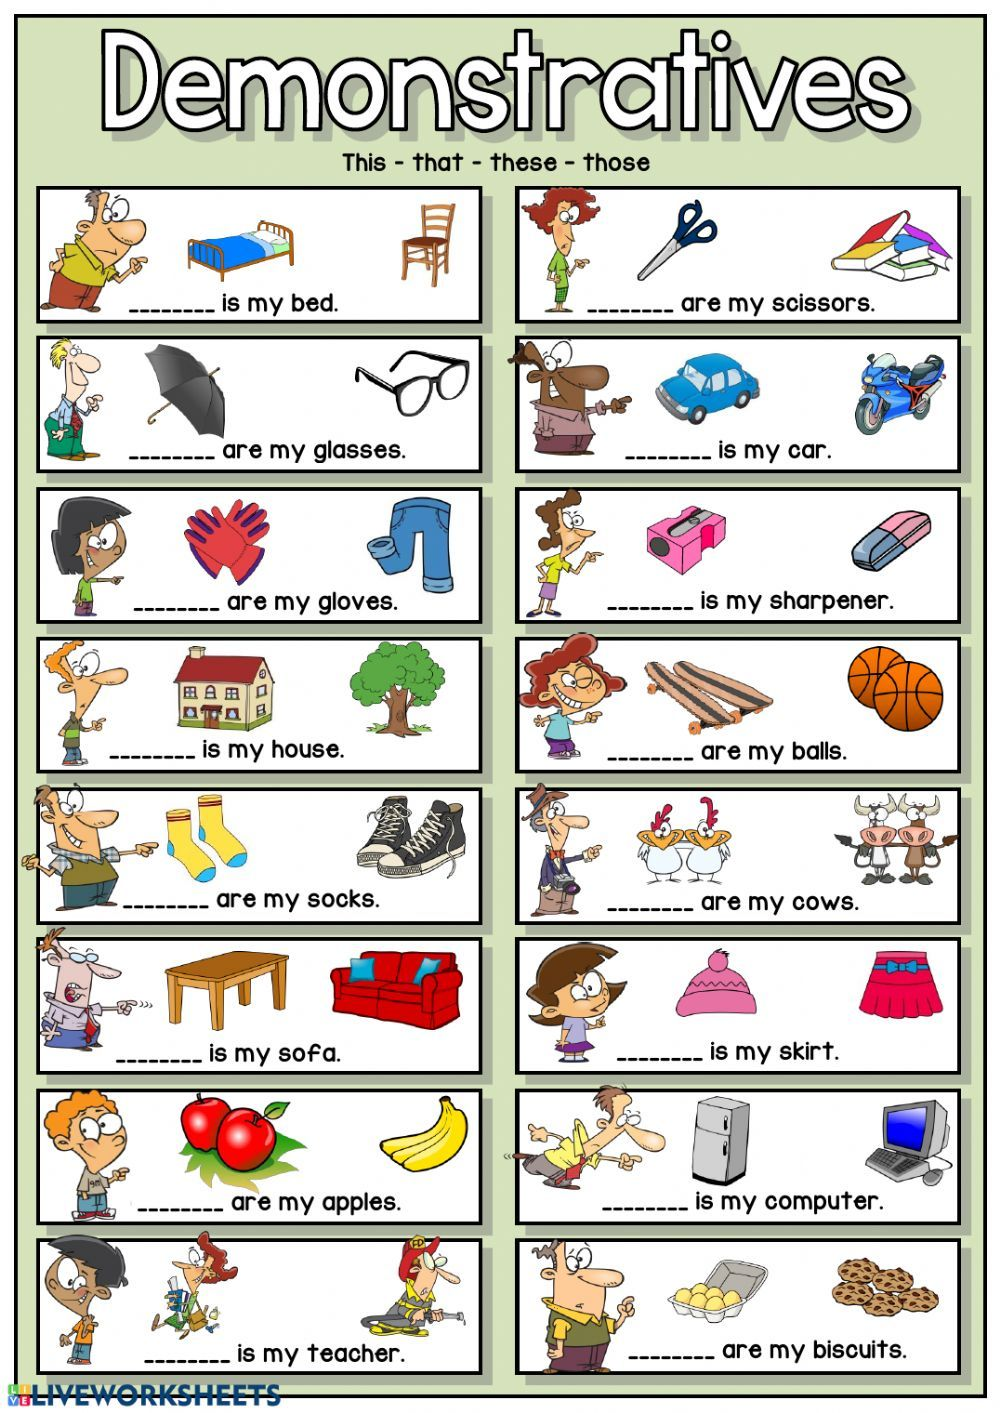 Demonstratives online exercise and pdf. You can do the exercises online or  download th…   English worksheets for kids [ 1413 x 1000 Pixel ]